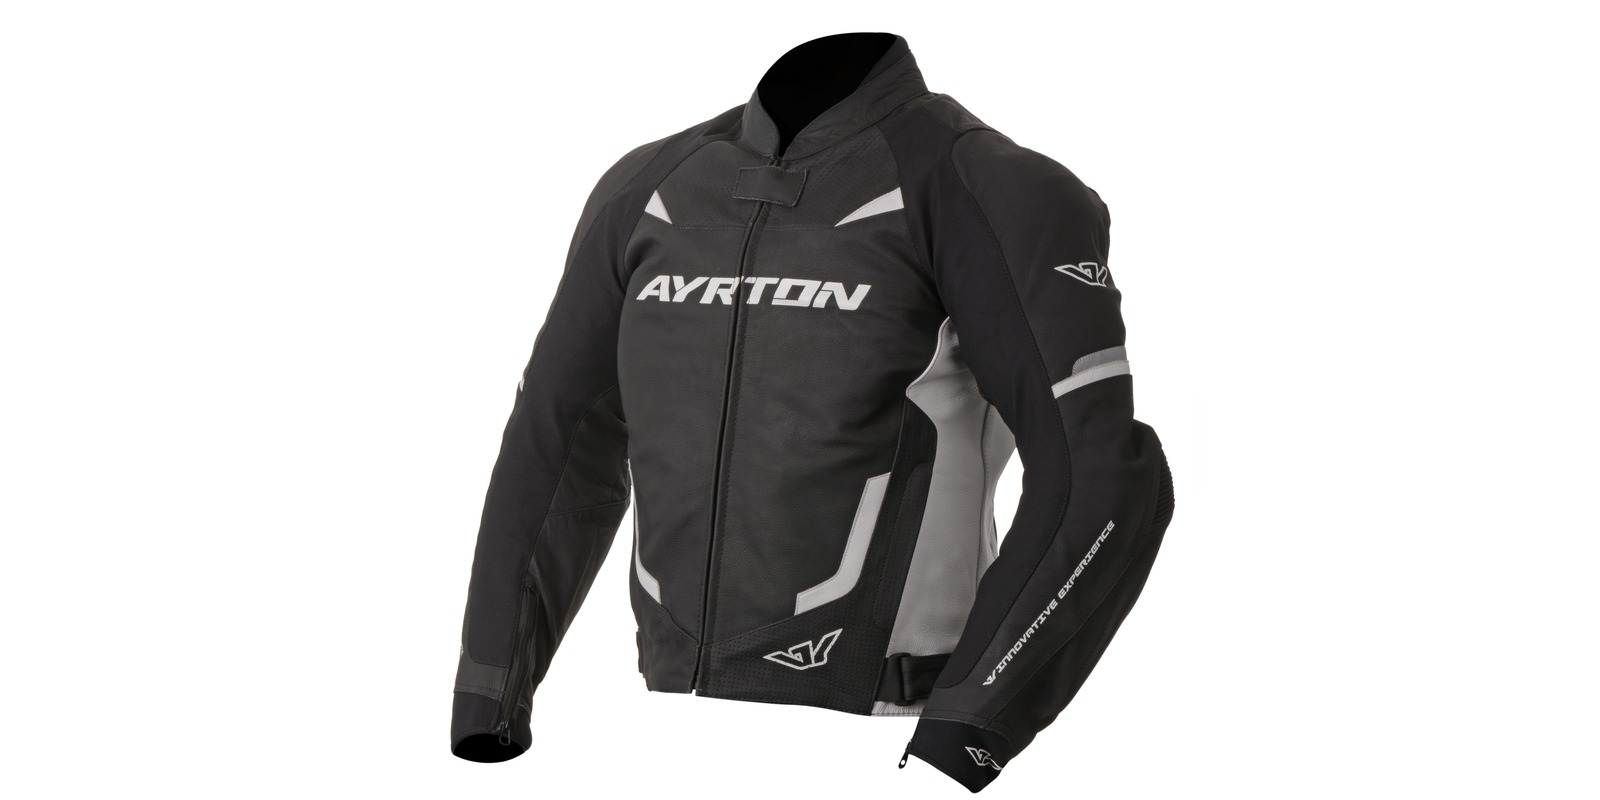 Ayrton EVOLINE black/white